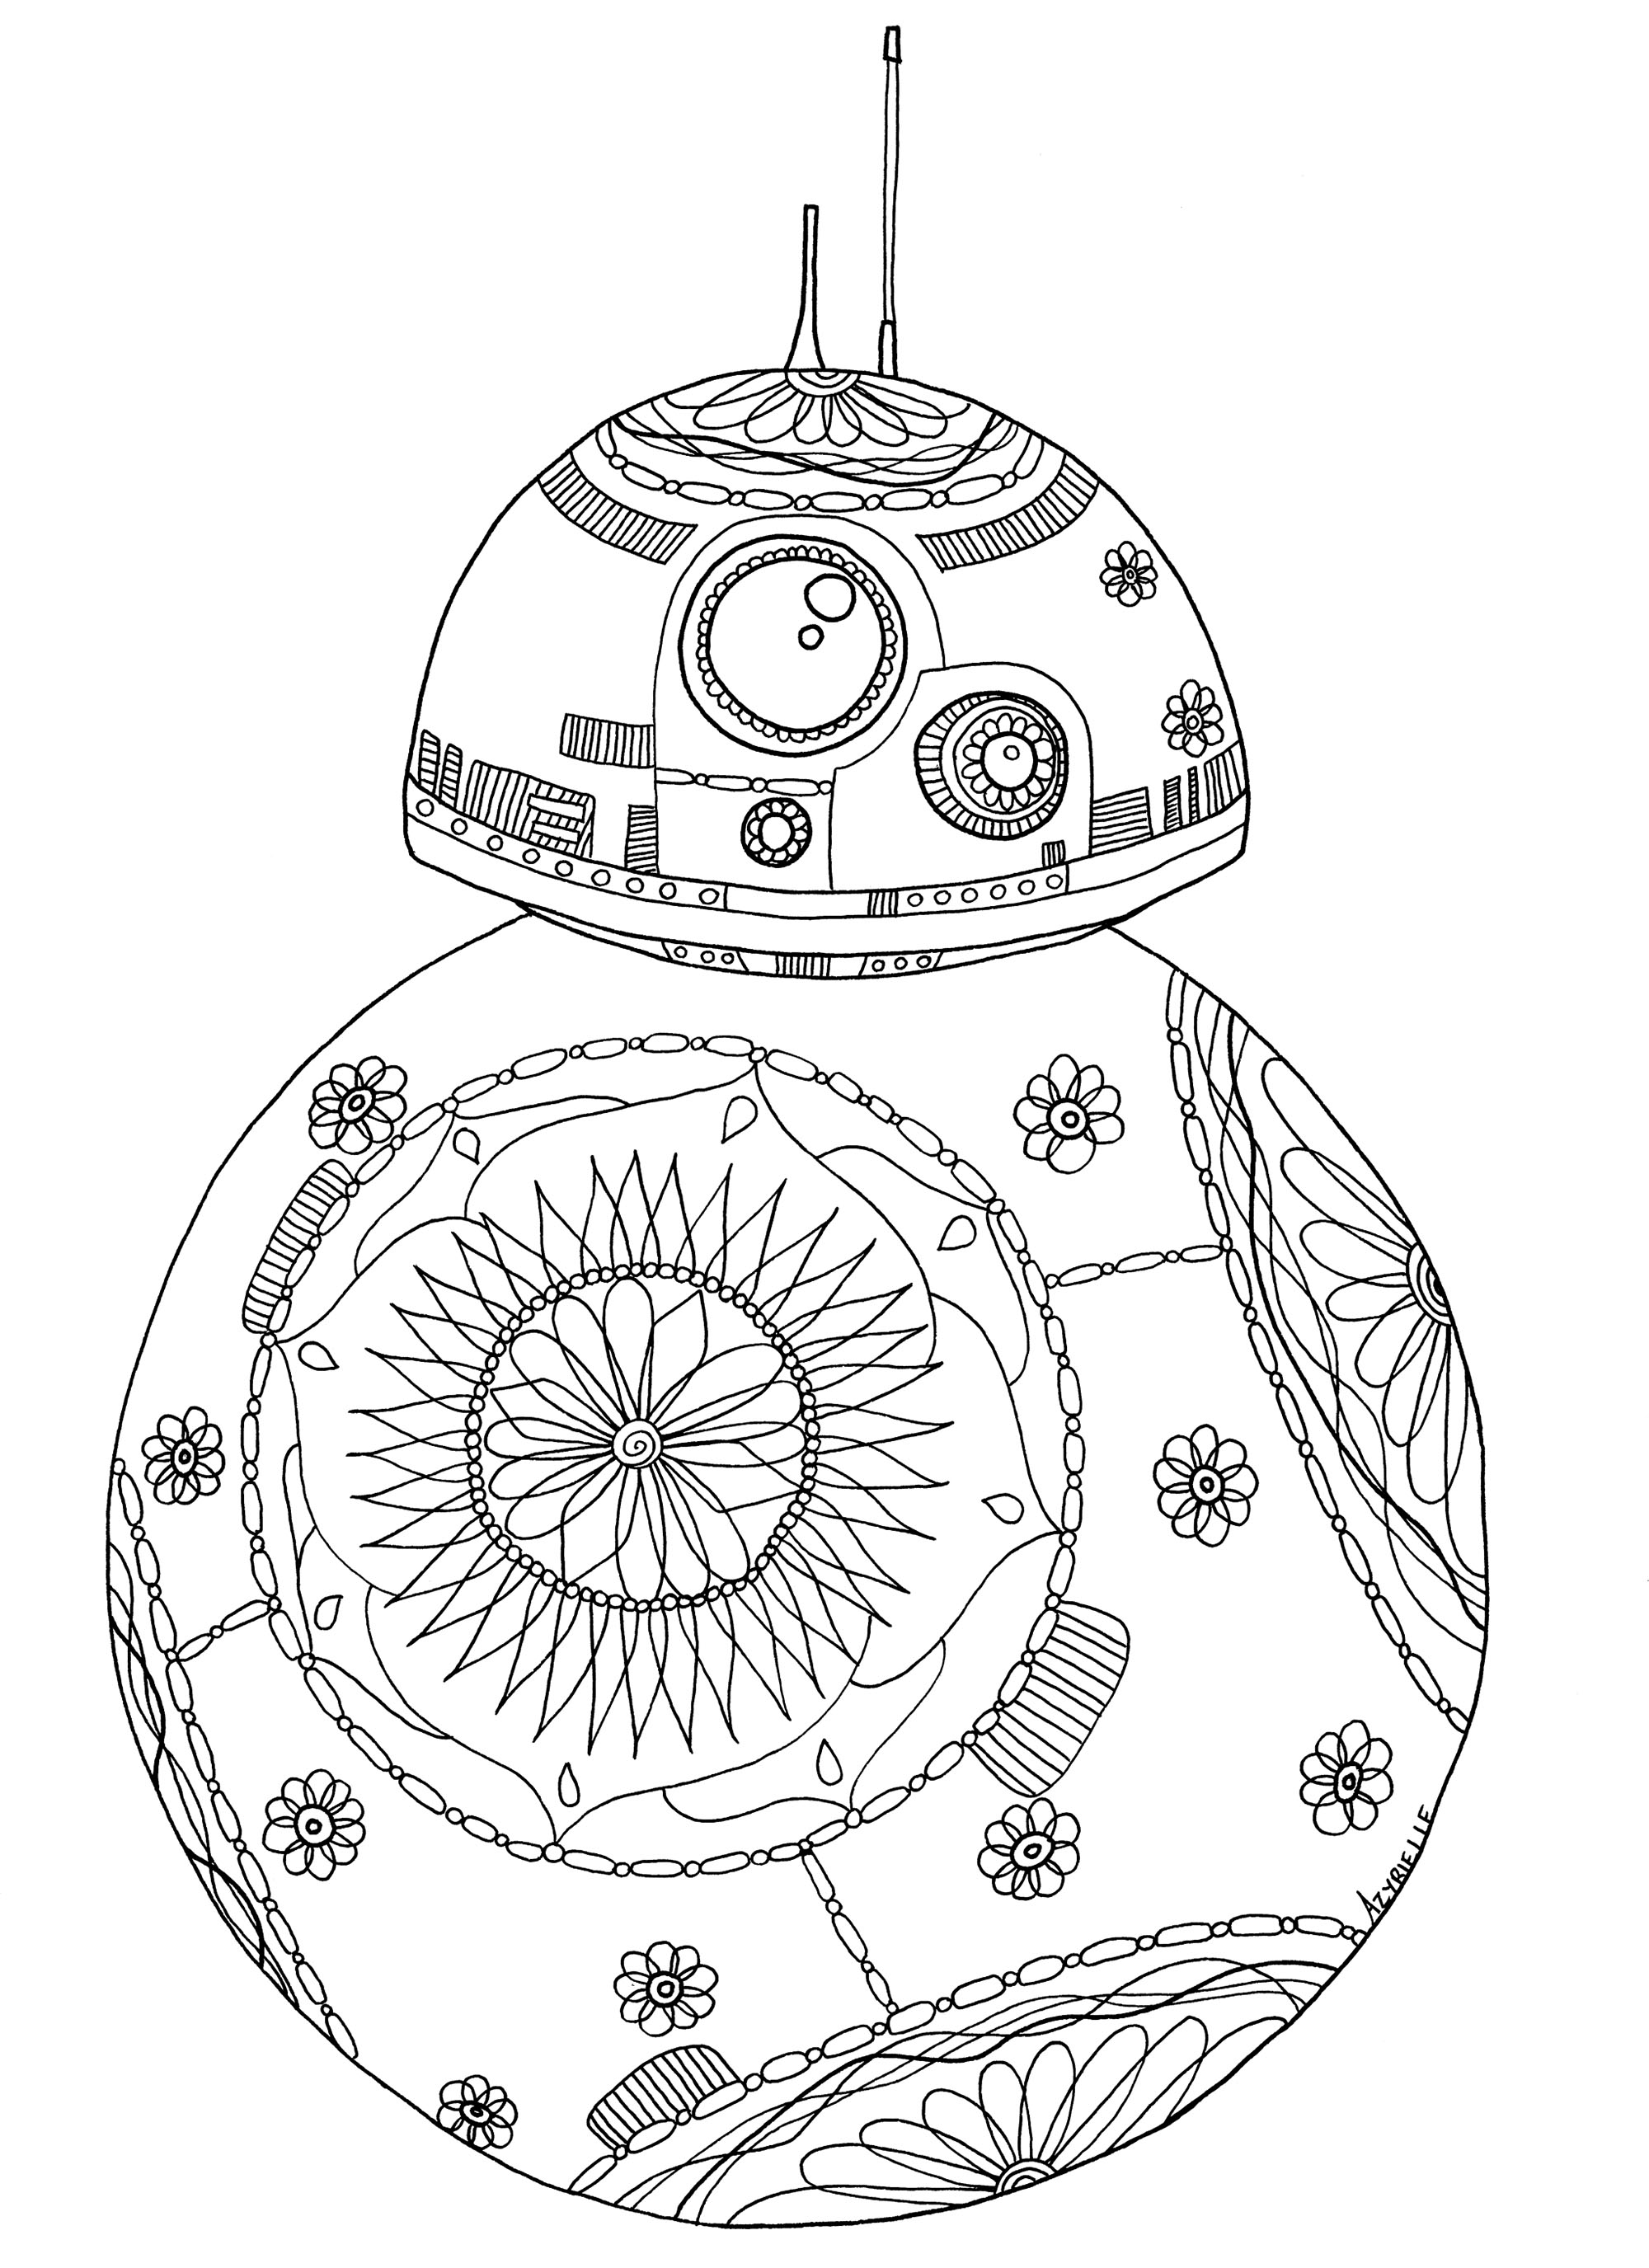 Star Wars Coloring Pages Leia At Getcolorings